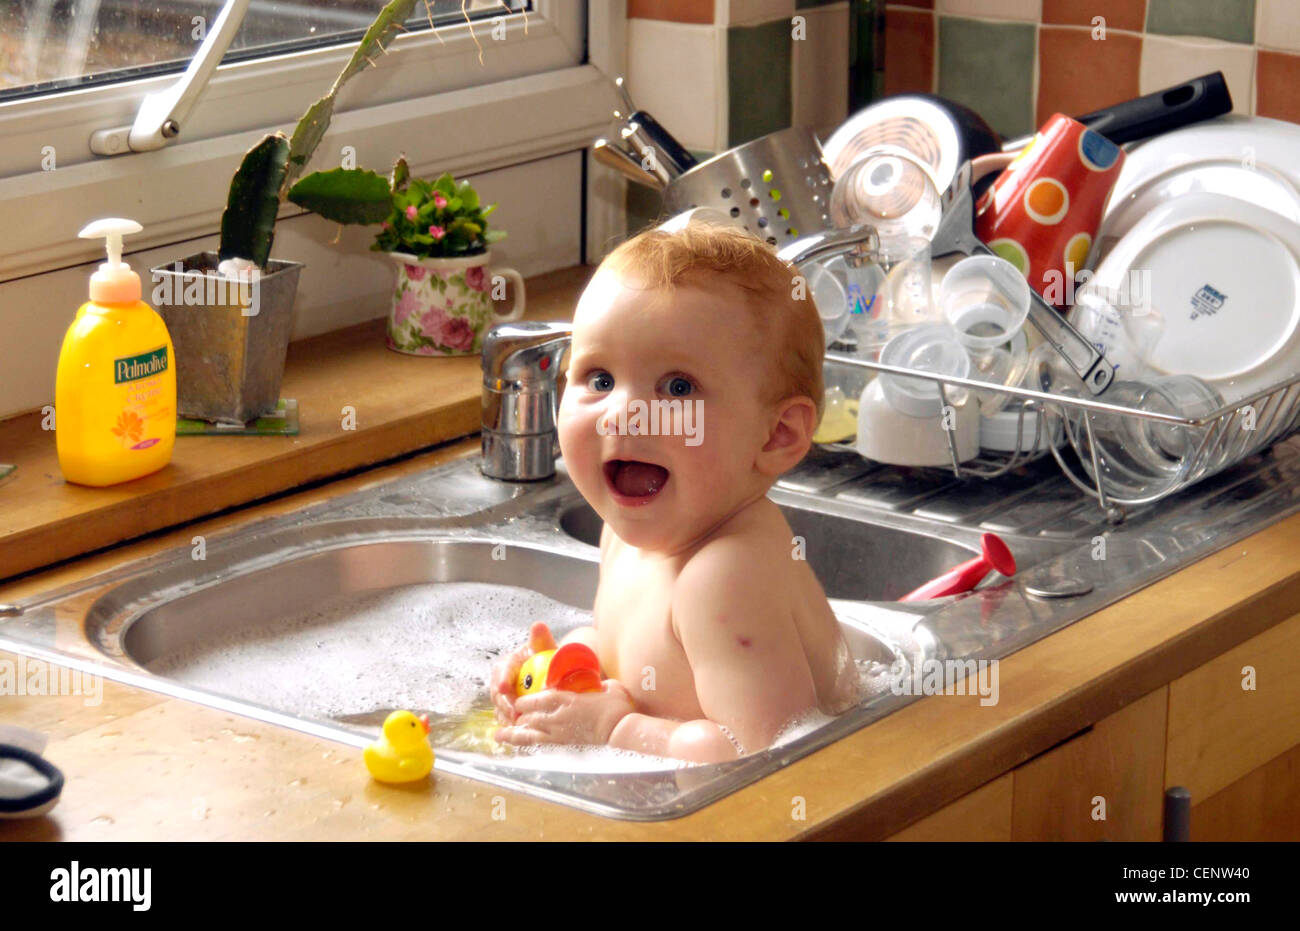 Rubber Duck Sink Stock Photos & Rubber Duck Sink Stock Images - Alamy